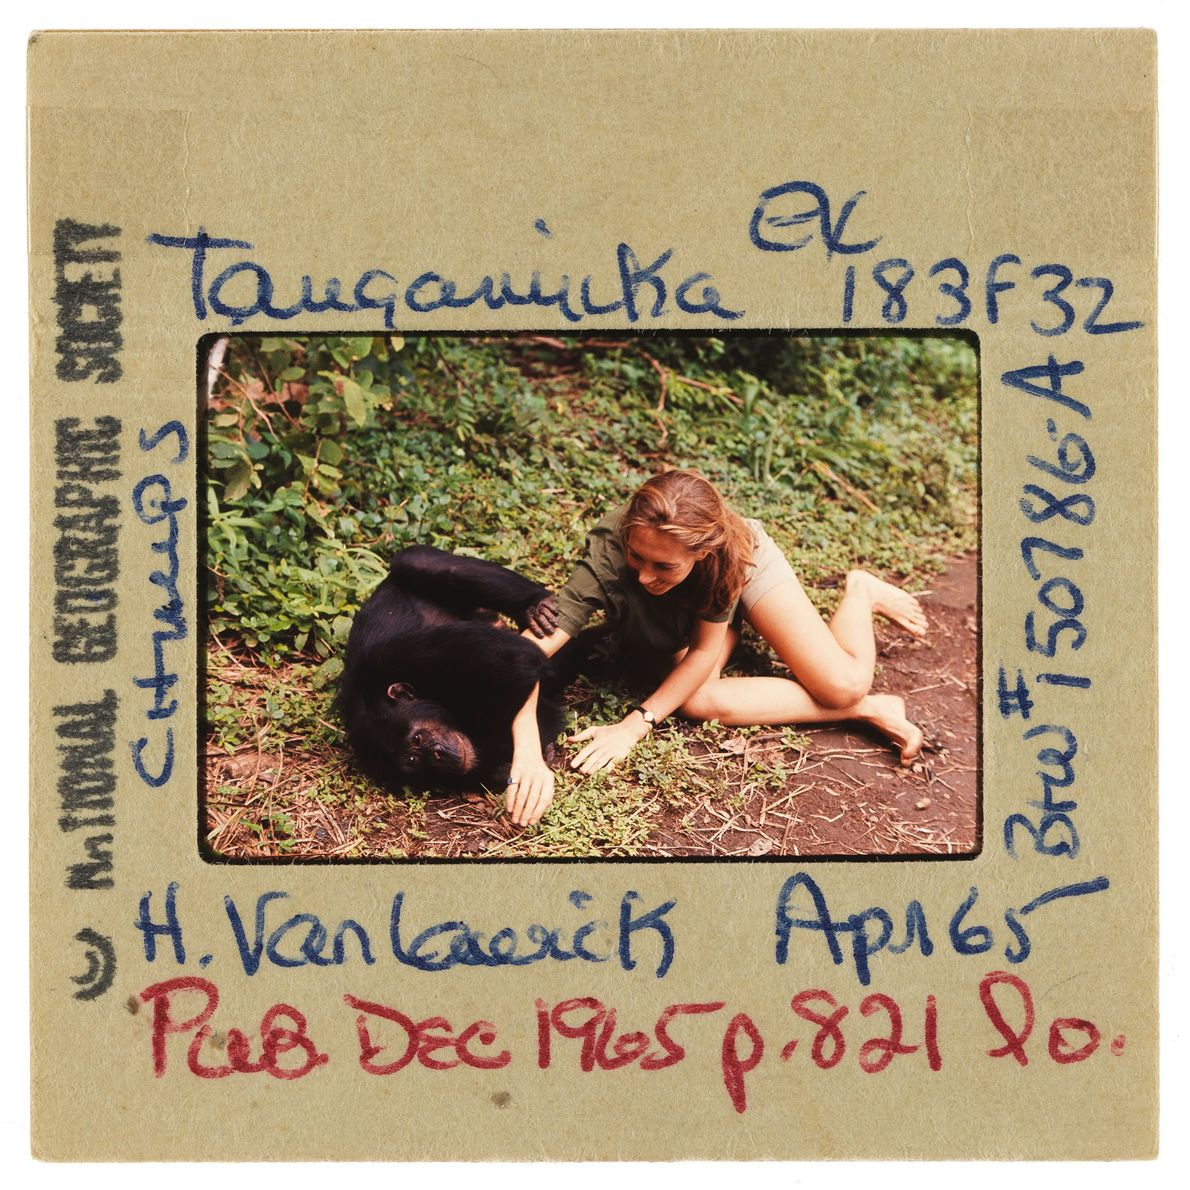 Jane and a chimpanzee play on the ground together.